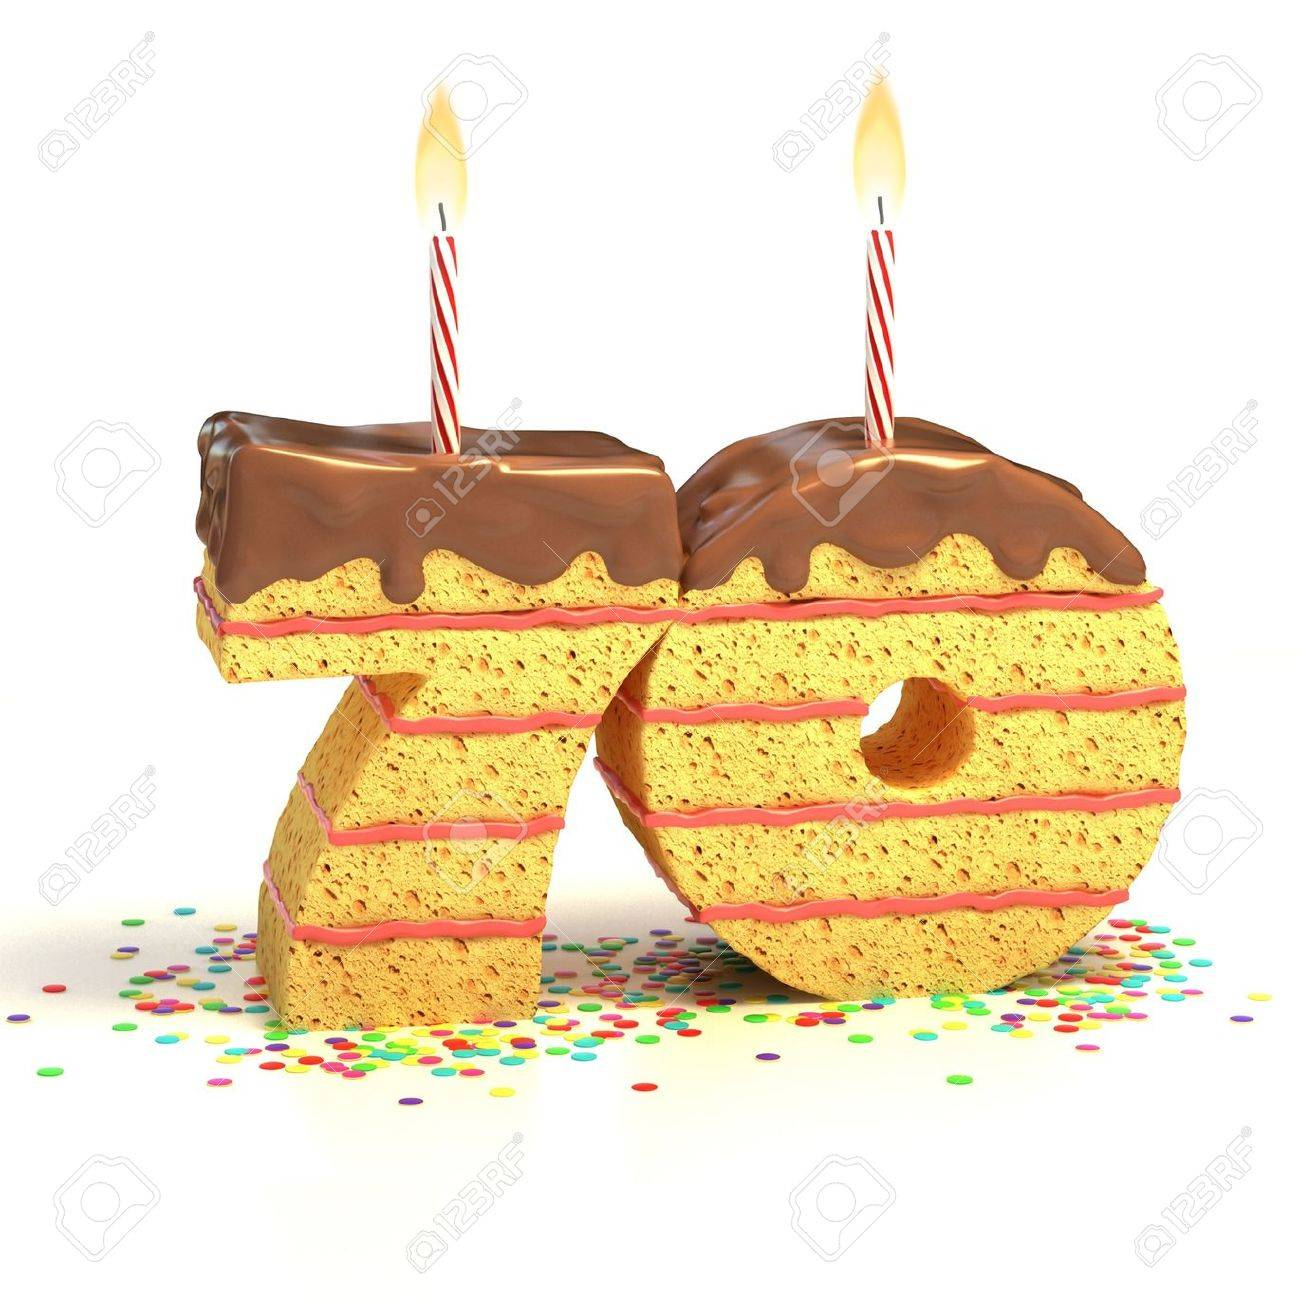 Chocolate birthday cake surrounded by confetti with lit candle for a seventieth birthday or anniversary celebration Stock Photo - 12331650